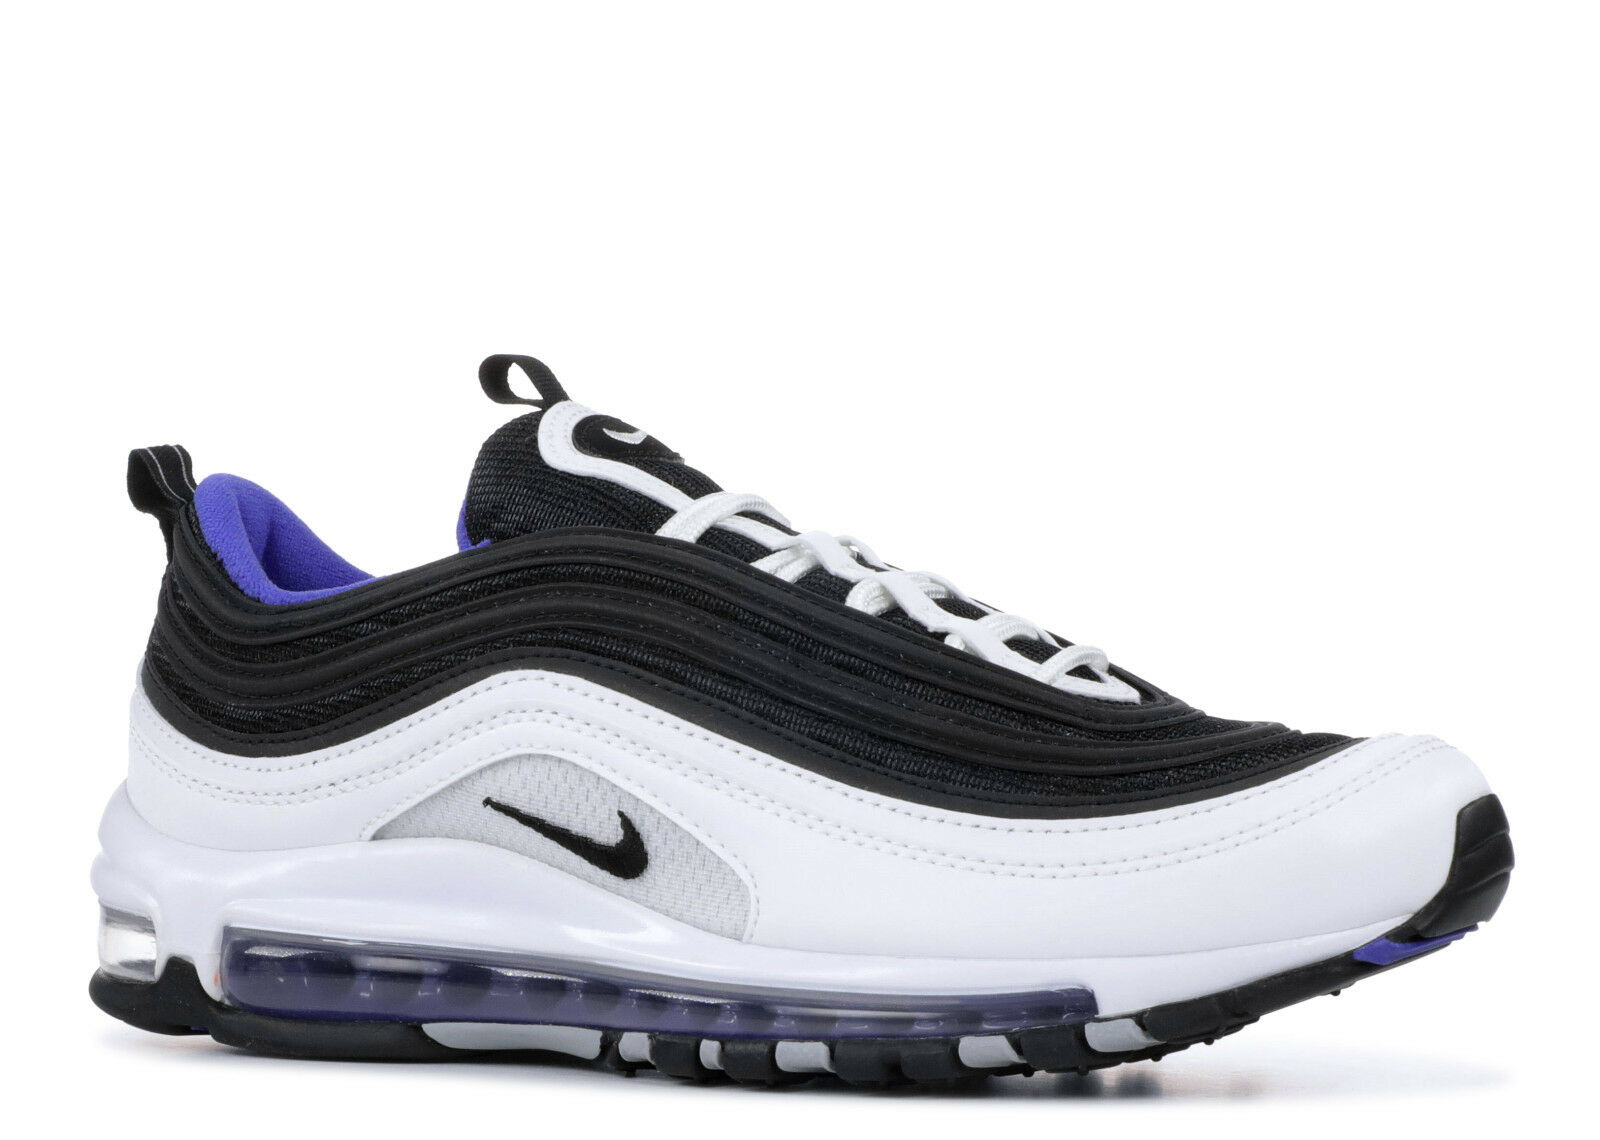 Nike Air Max 97 'Persian viola' - 921826-103 - Dimensione 8.5